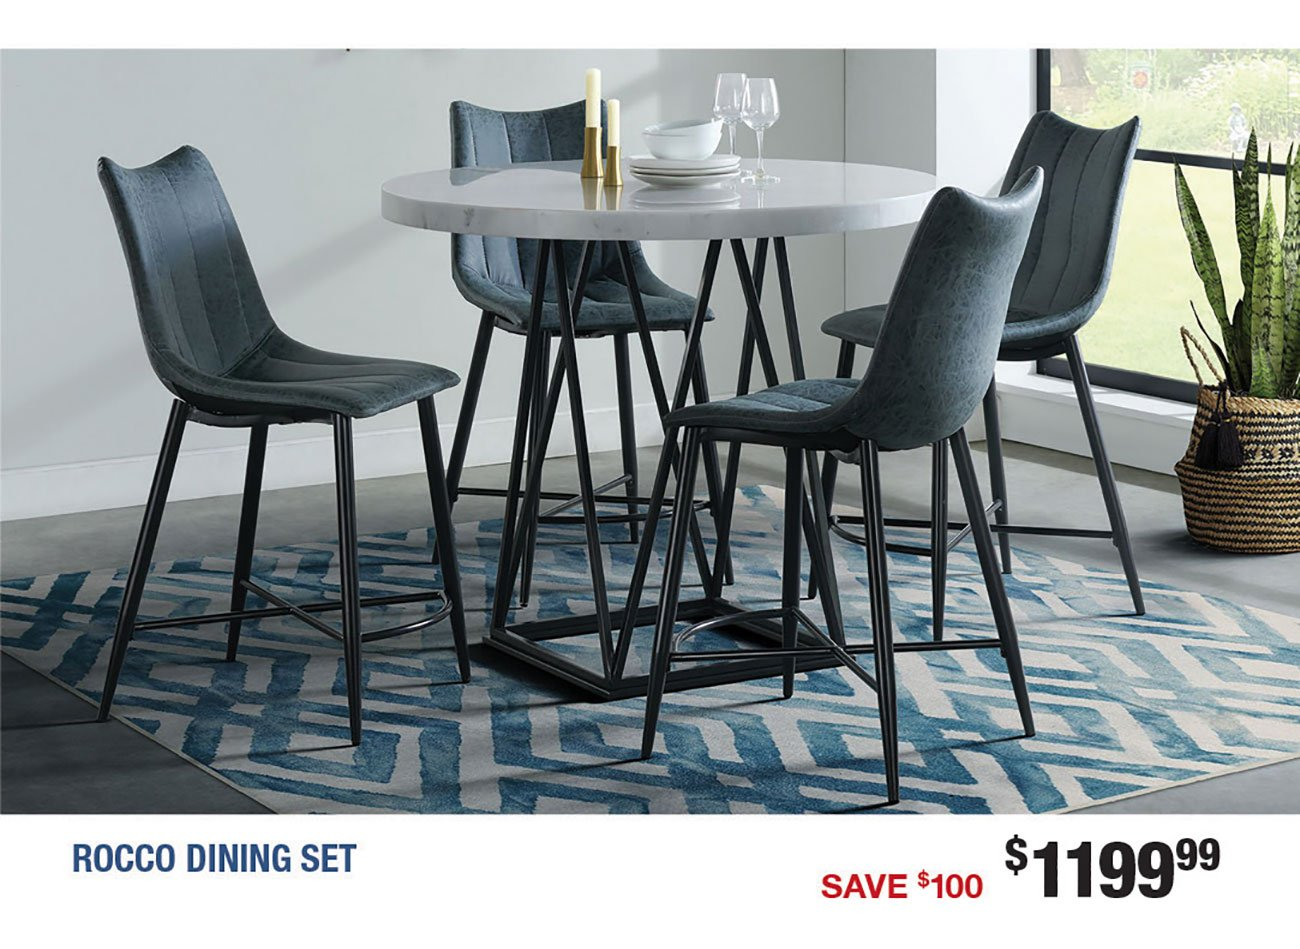 Rocco-Dining-Set